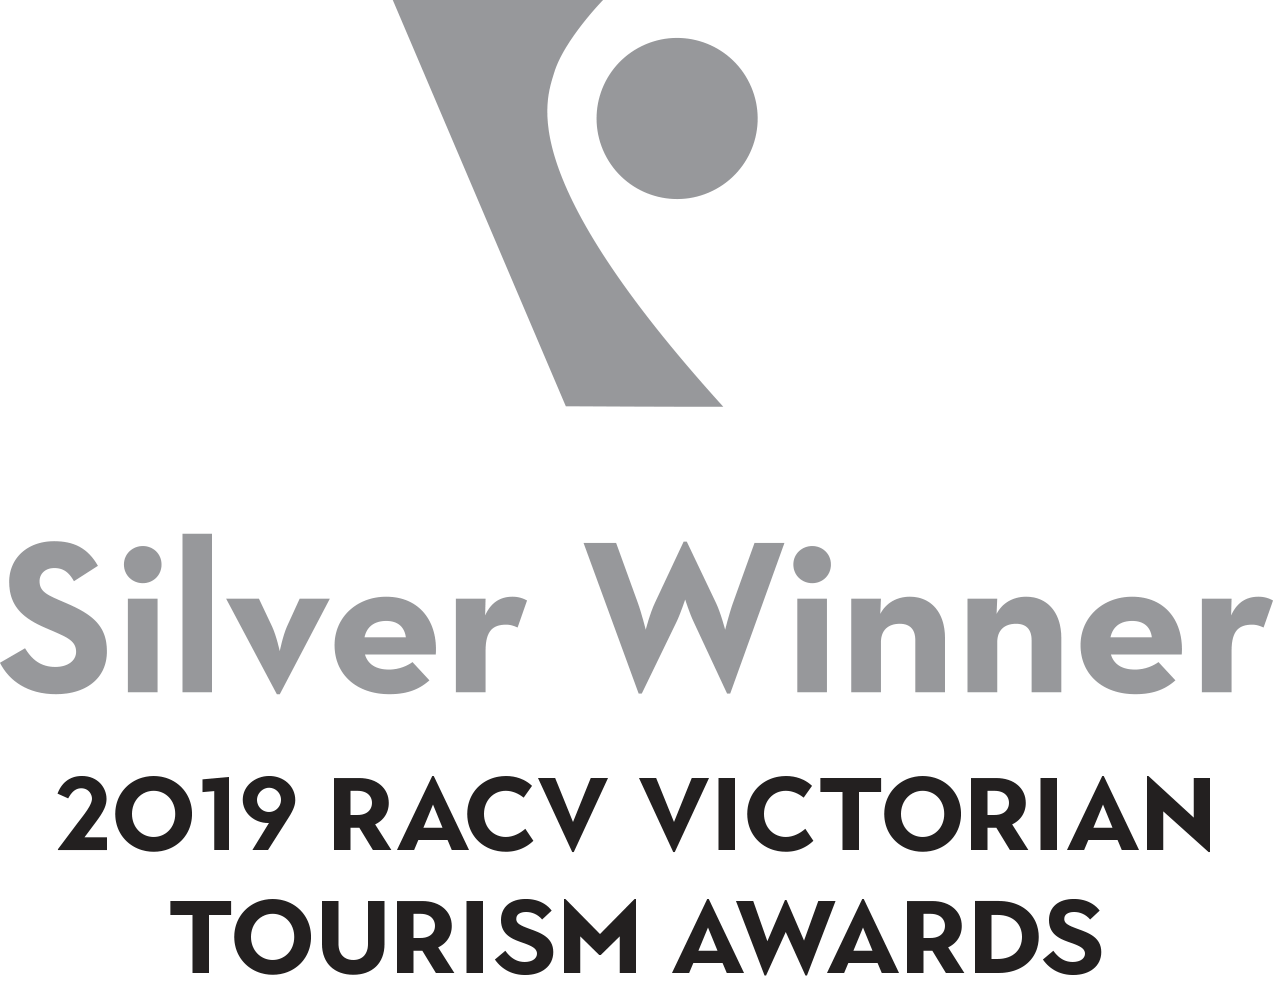 2019 Victorian Tourism Awards